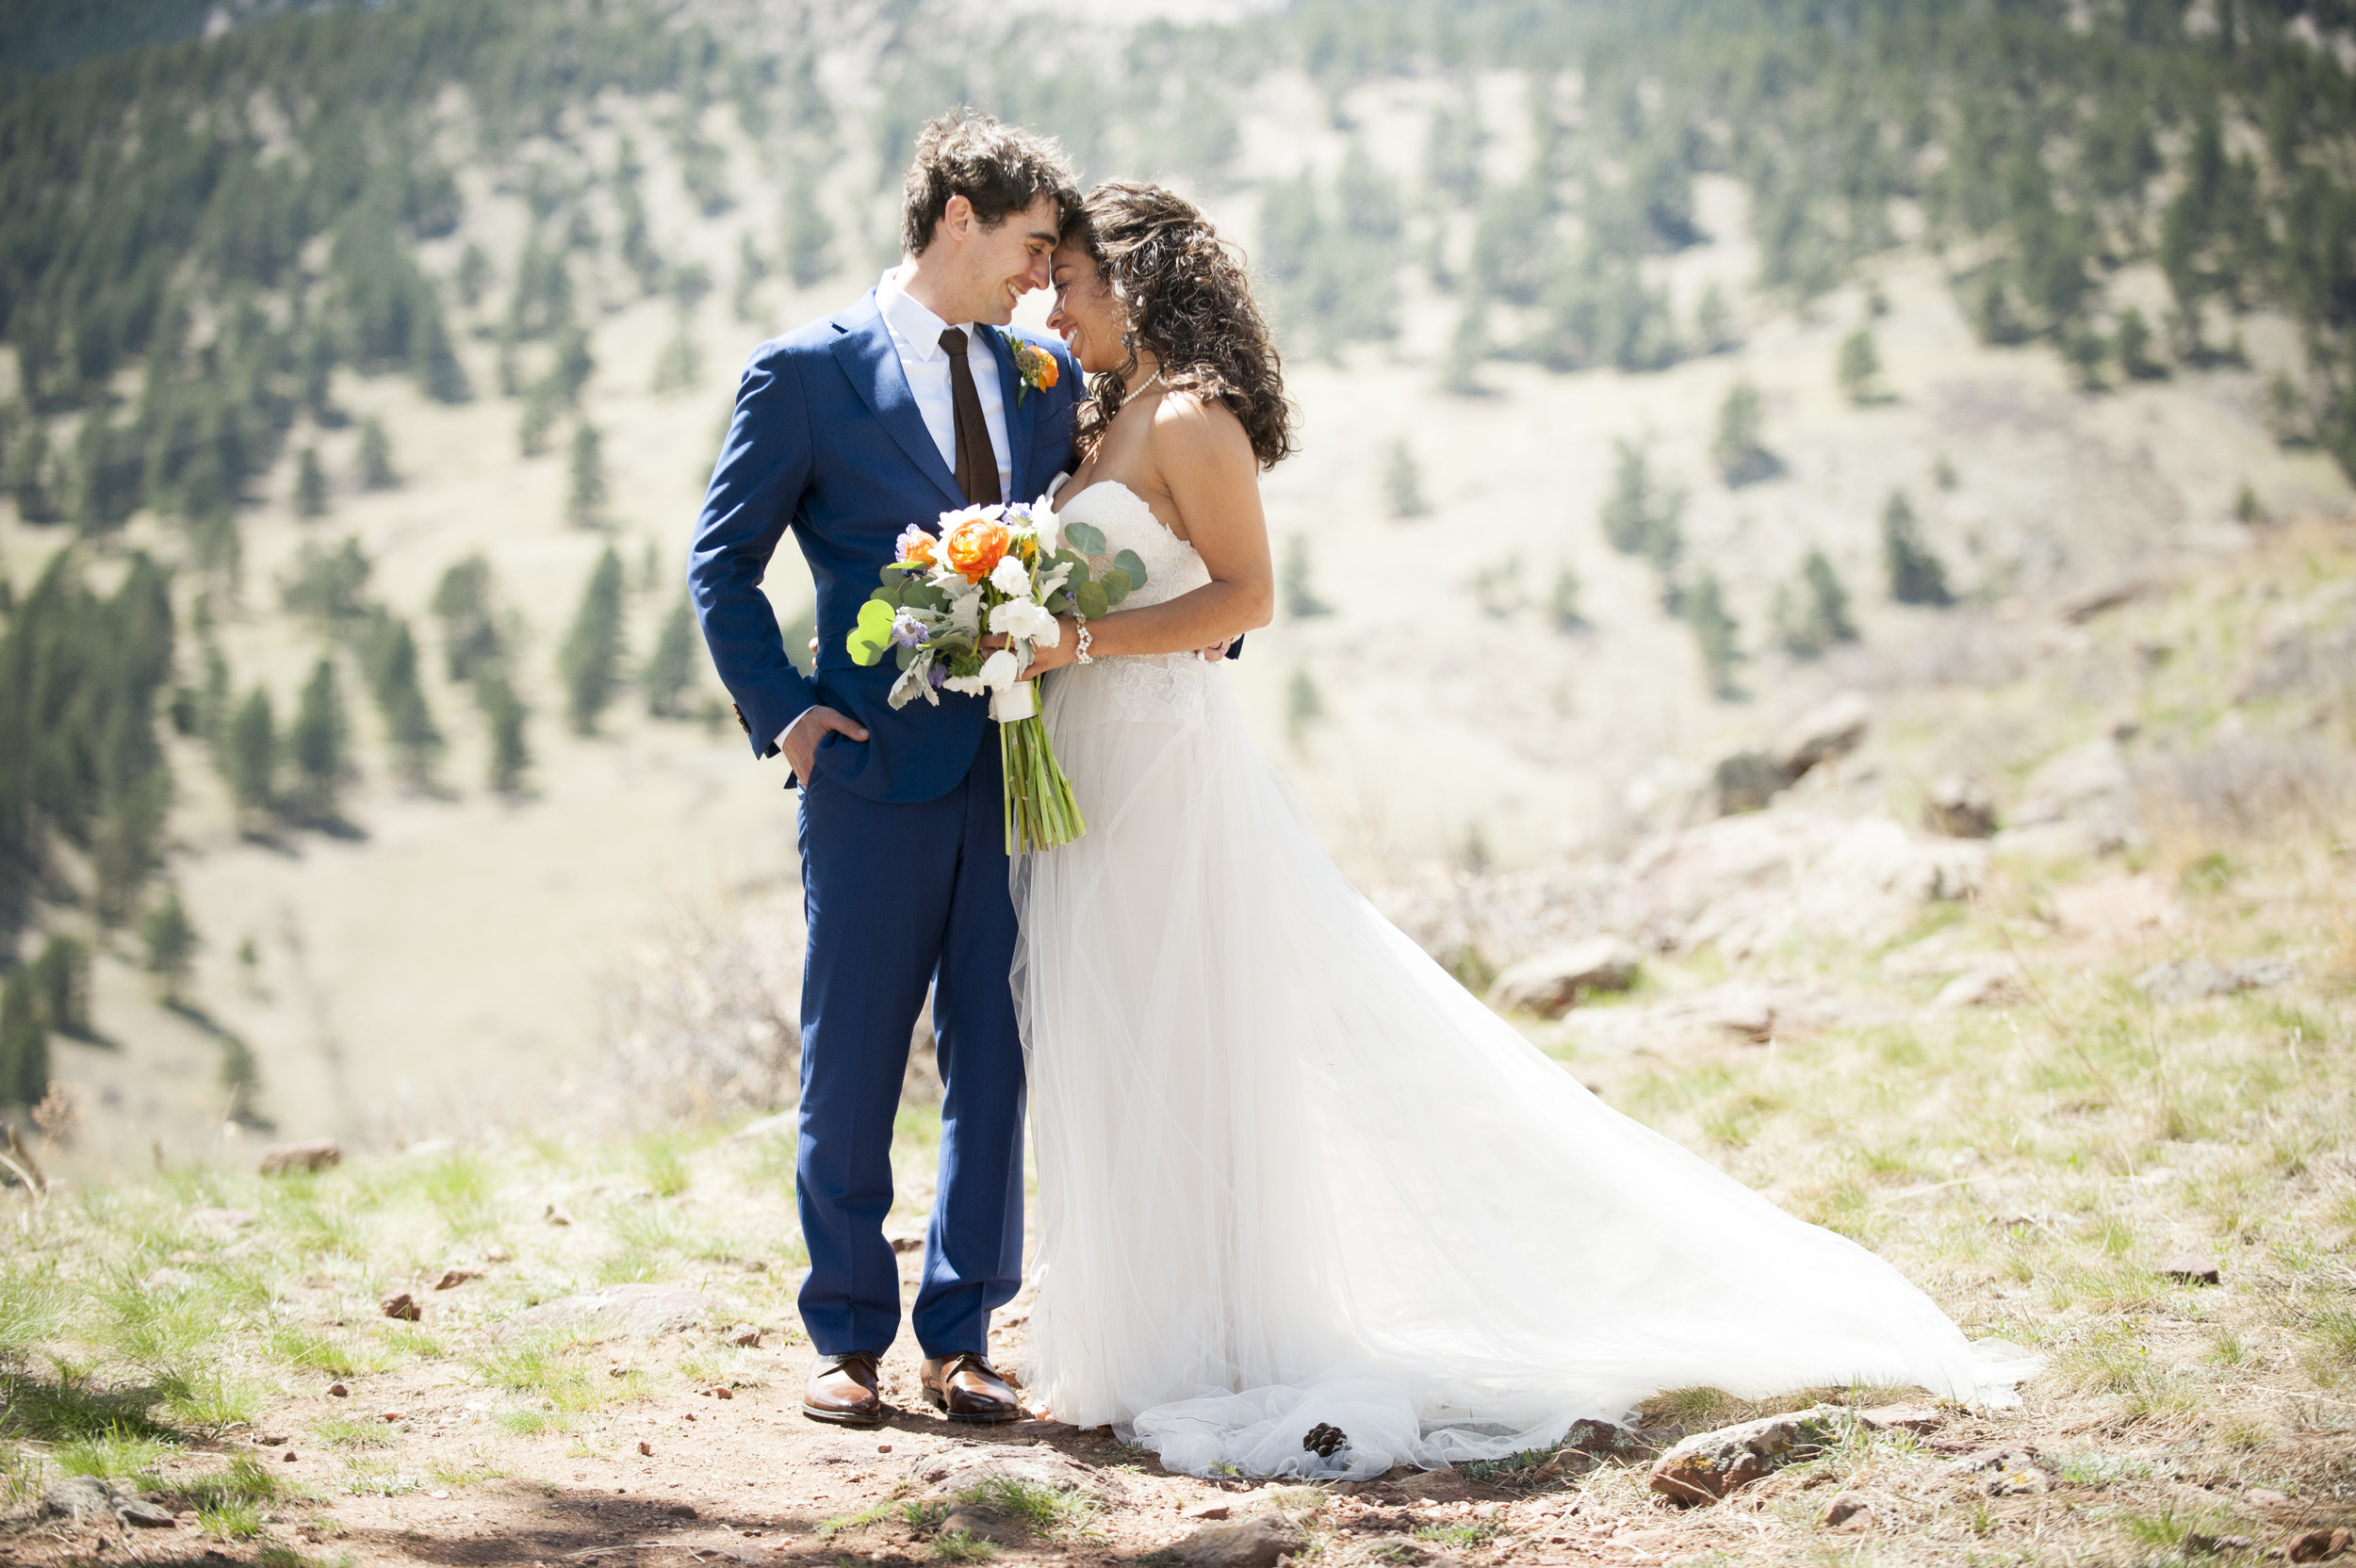 Wedding Photo albums - Your special day deserves a special album. Our exquisite wedding album designs are curated to your style and always produced with archival materials, keeping their quality and color for generations to come.